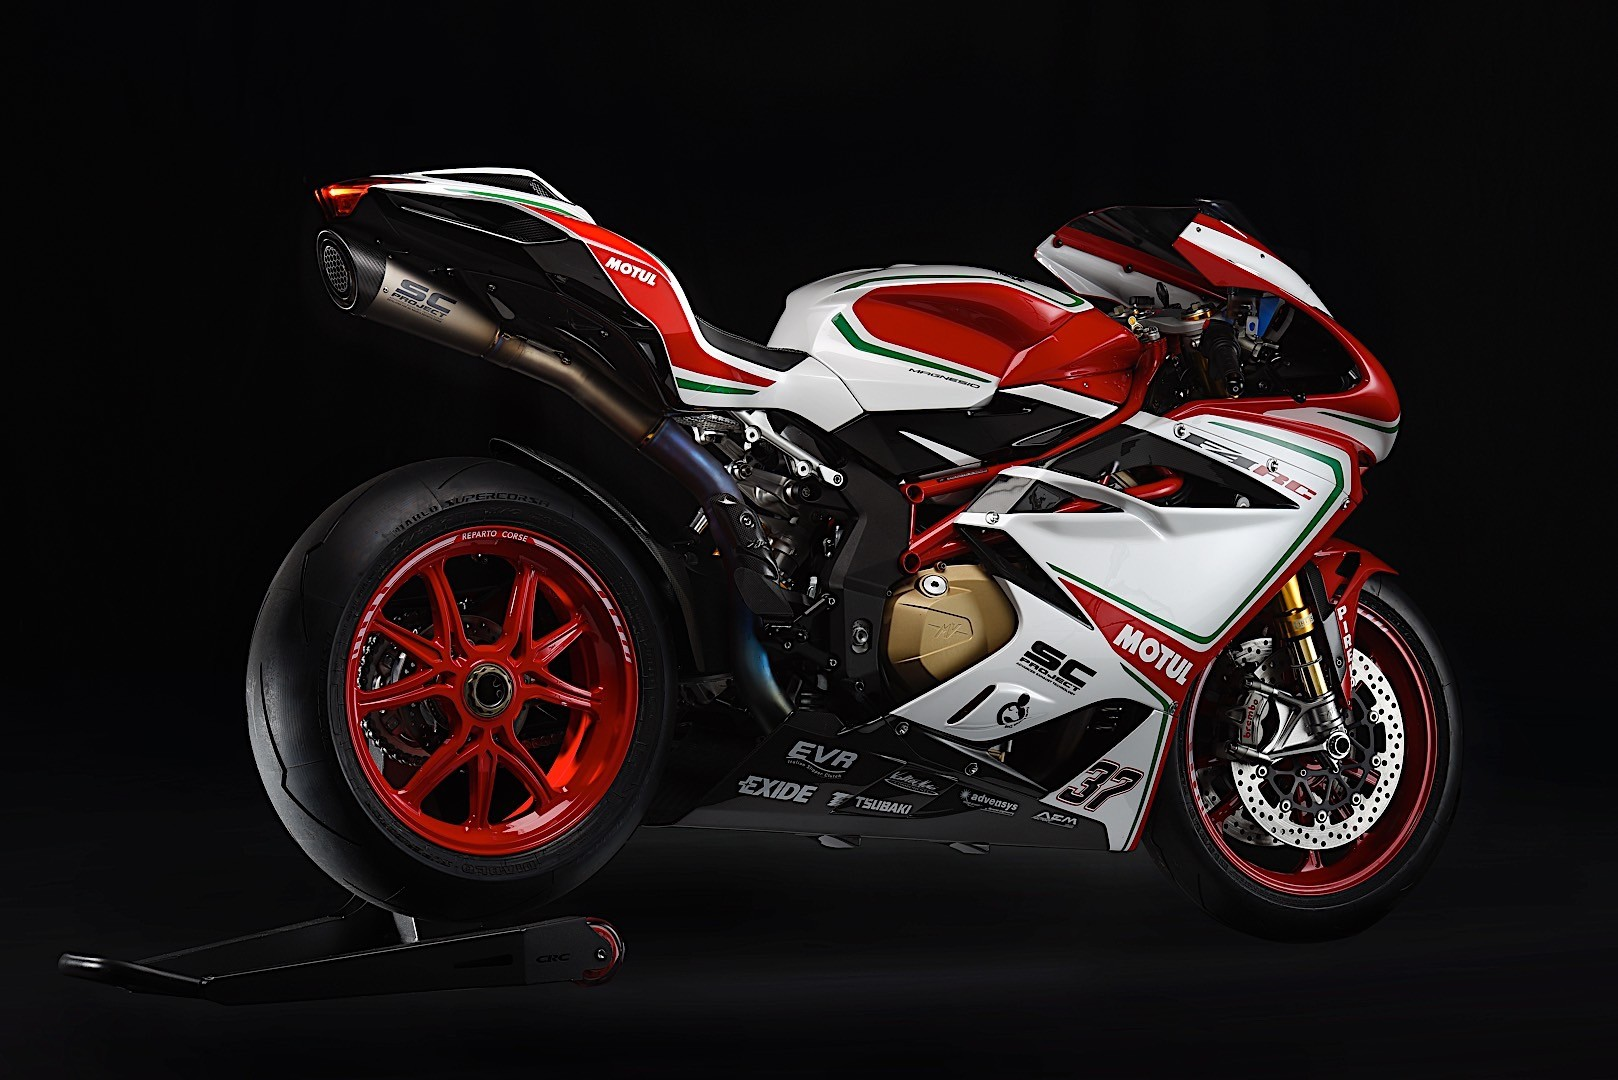 Full Hd Motorcycle Wallpaper 2018 Mv Agusta F4 Rc Is World Sbk For The Street